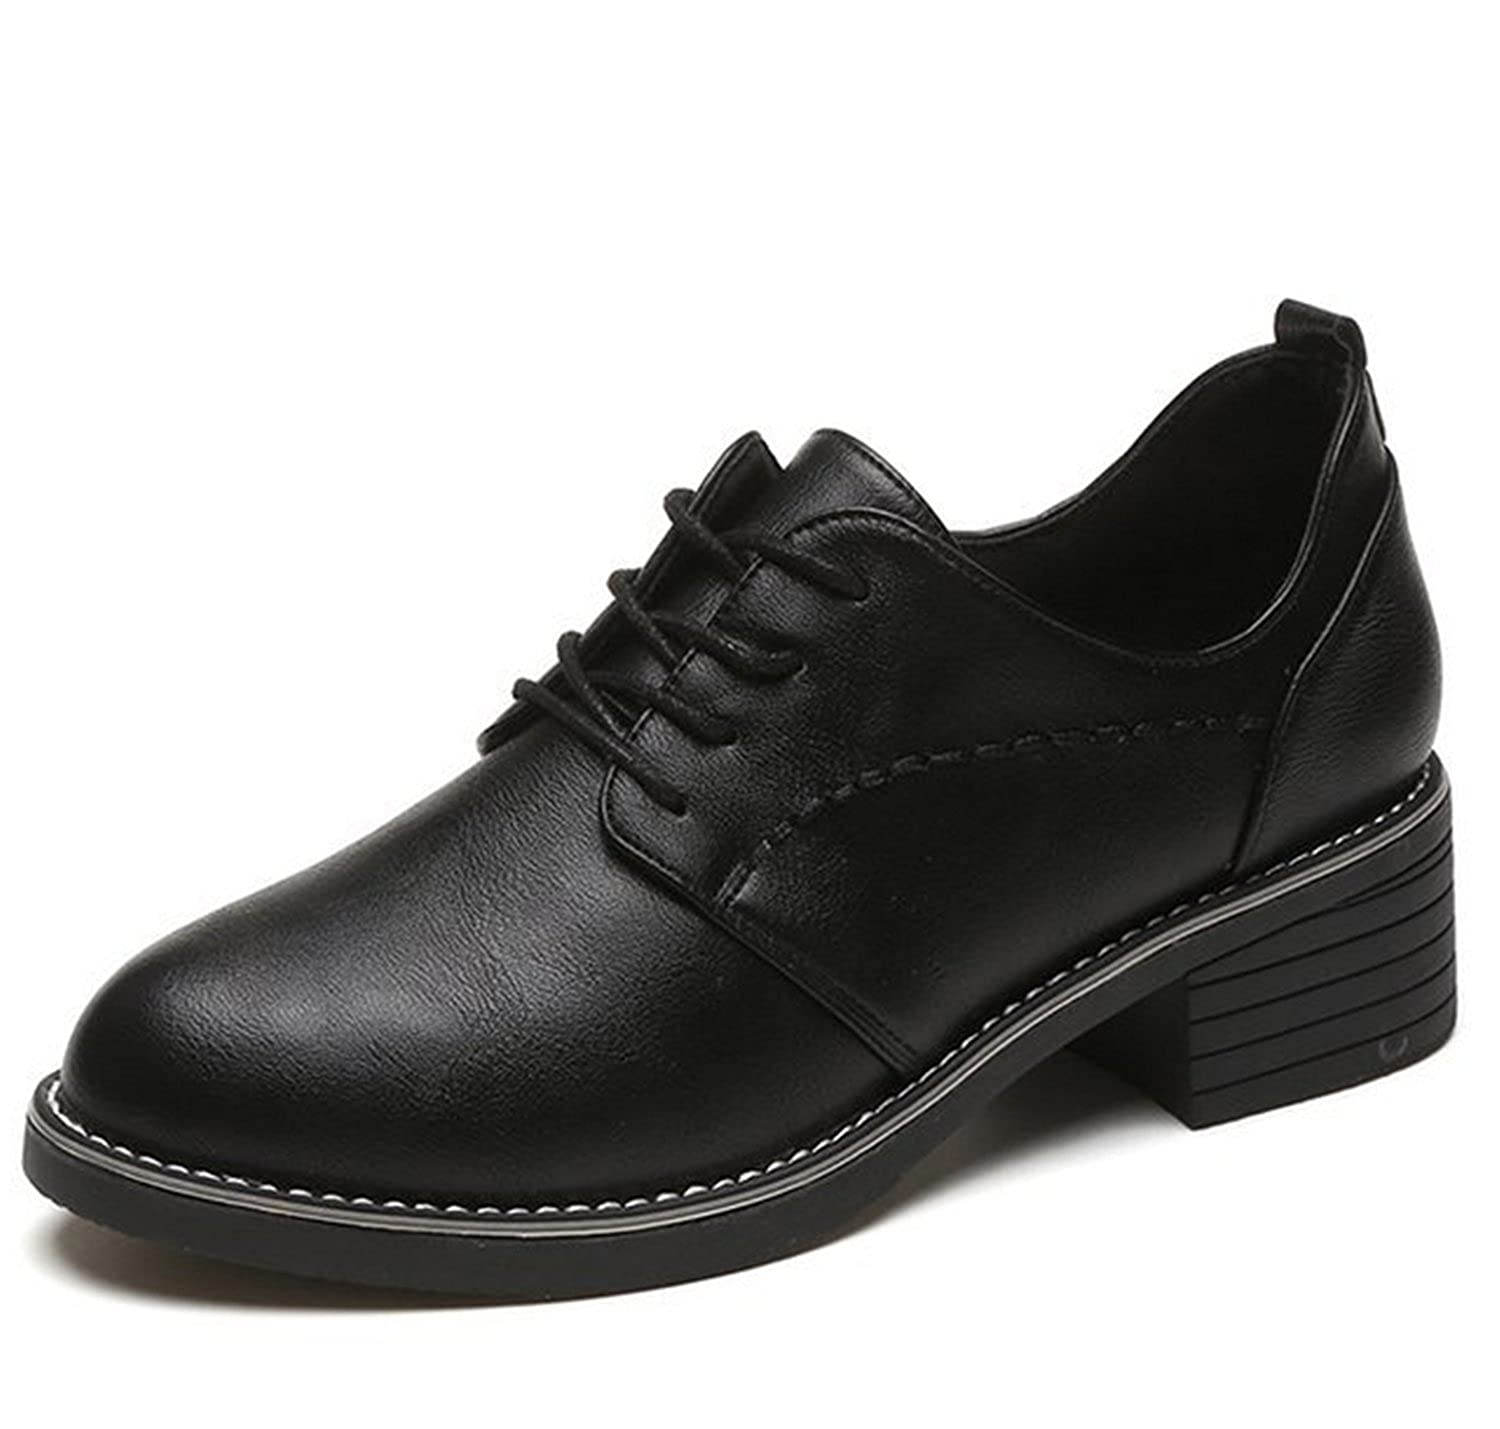 Women's Casual Lace Up Pu Leather Low Heels Oxford Round Toe Shoes B077TWG2Y5